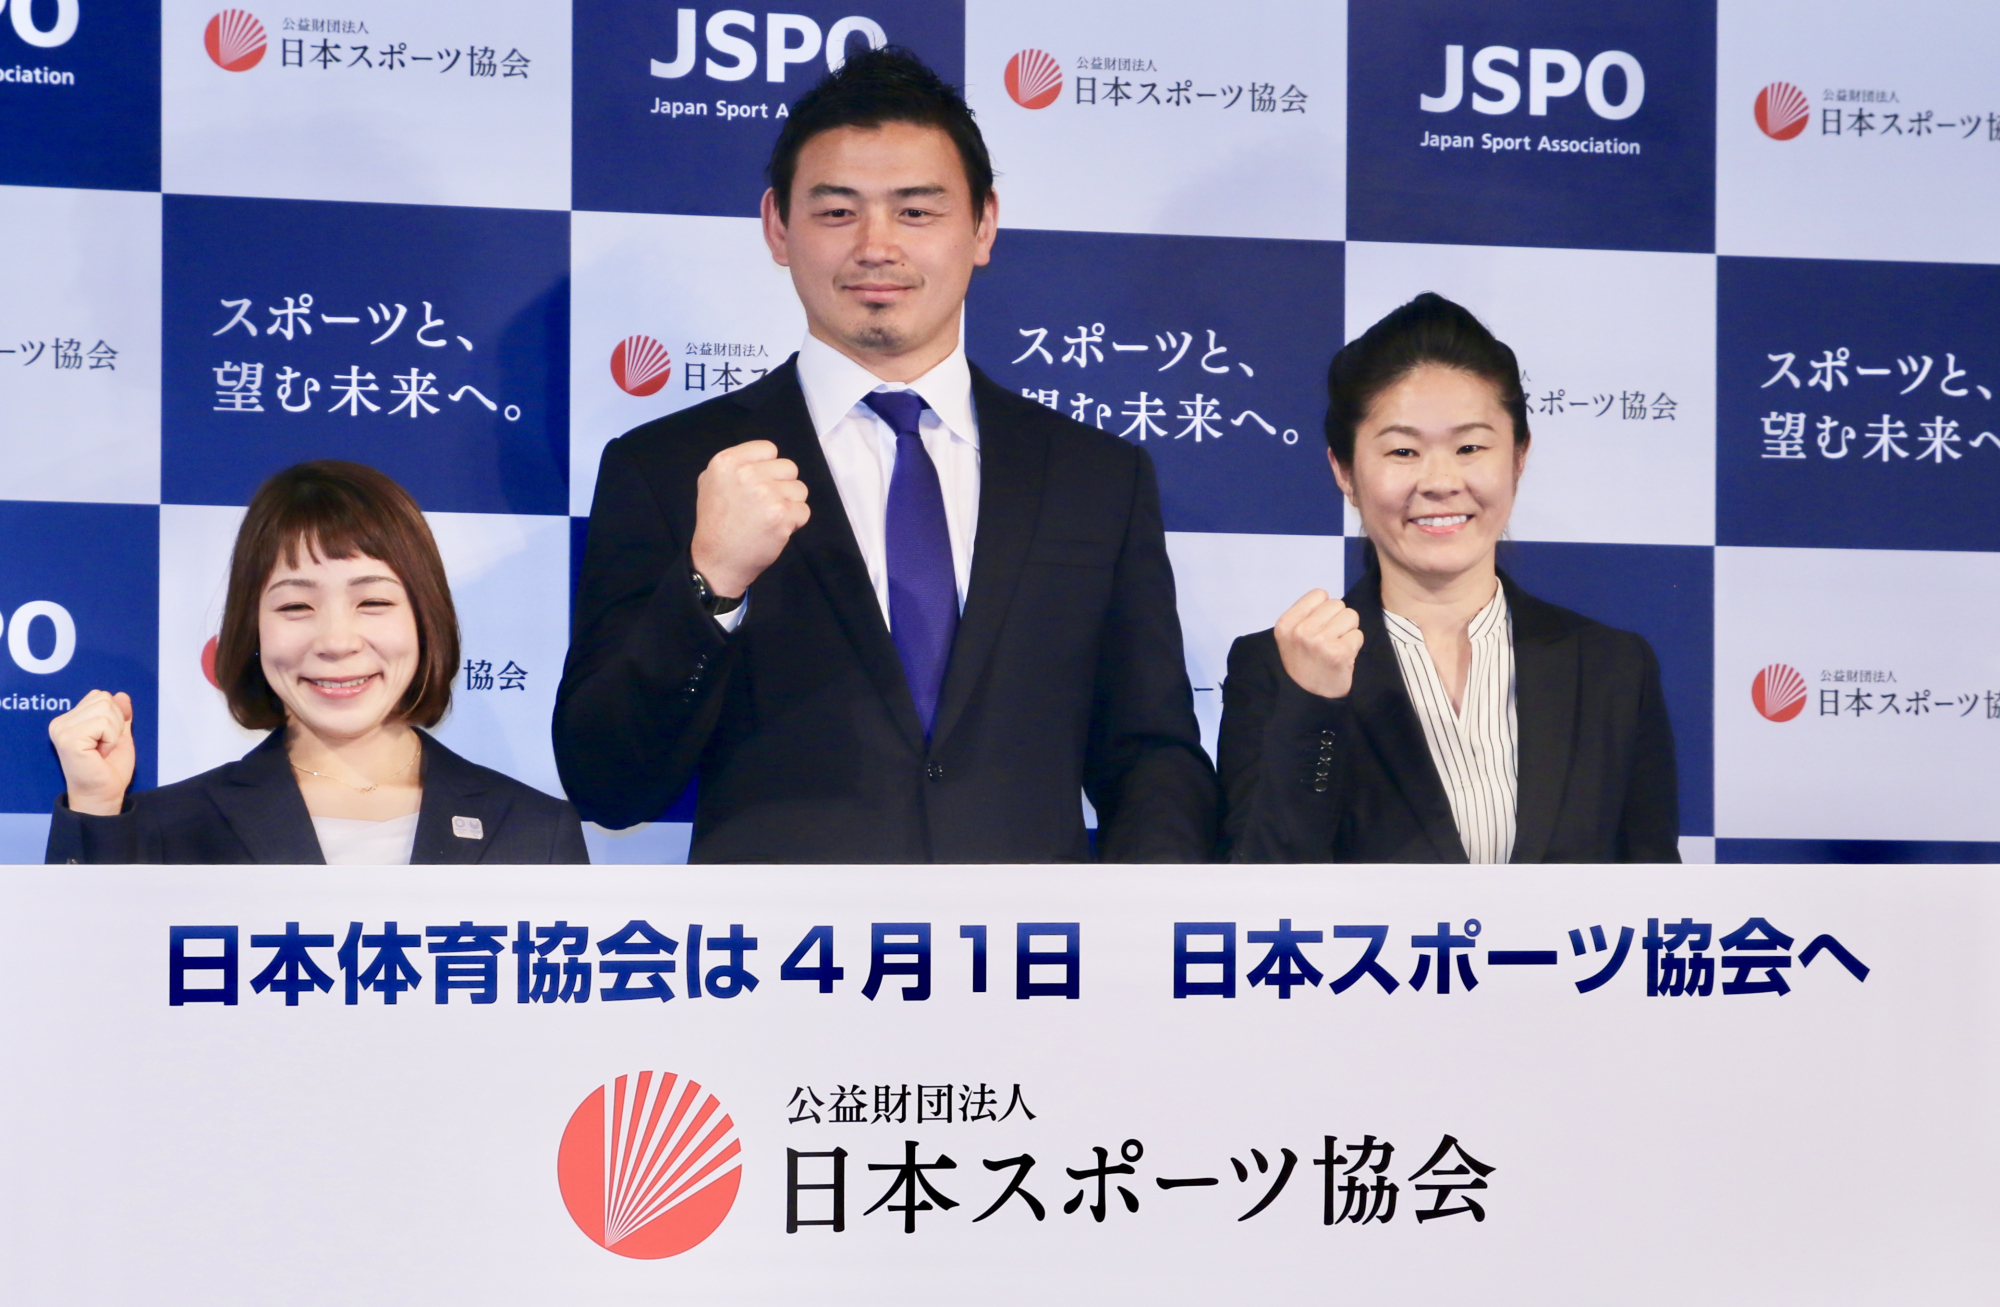 Two-time Olympic weightlifting medalist Hiromi Miyake (left), rugby fullback Ayumu Goromaru (center) and former women's soccer star Homare Sawa pose for photos at a Tokyo news conference on Thursday. Starting on Sunday, the Japan Sports Association's modified name will be the Japan Sport Association. | KAZ NAGATSUKA